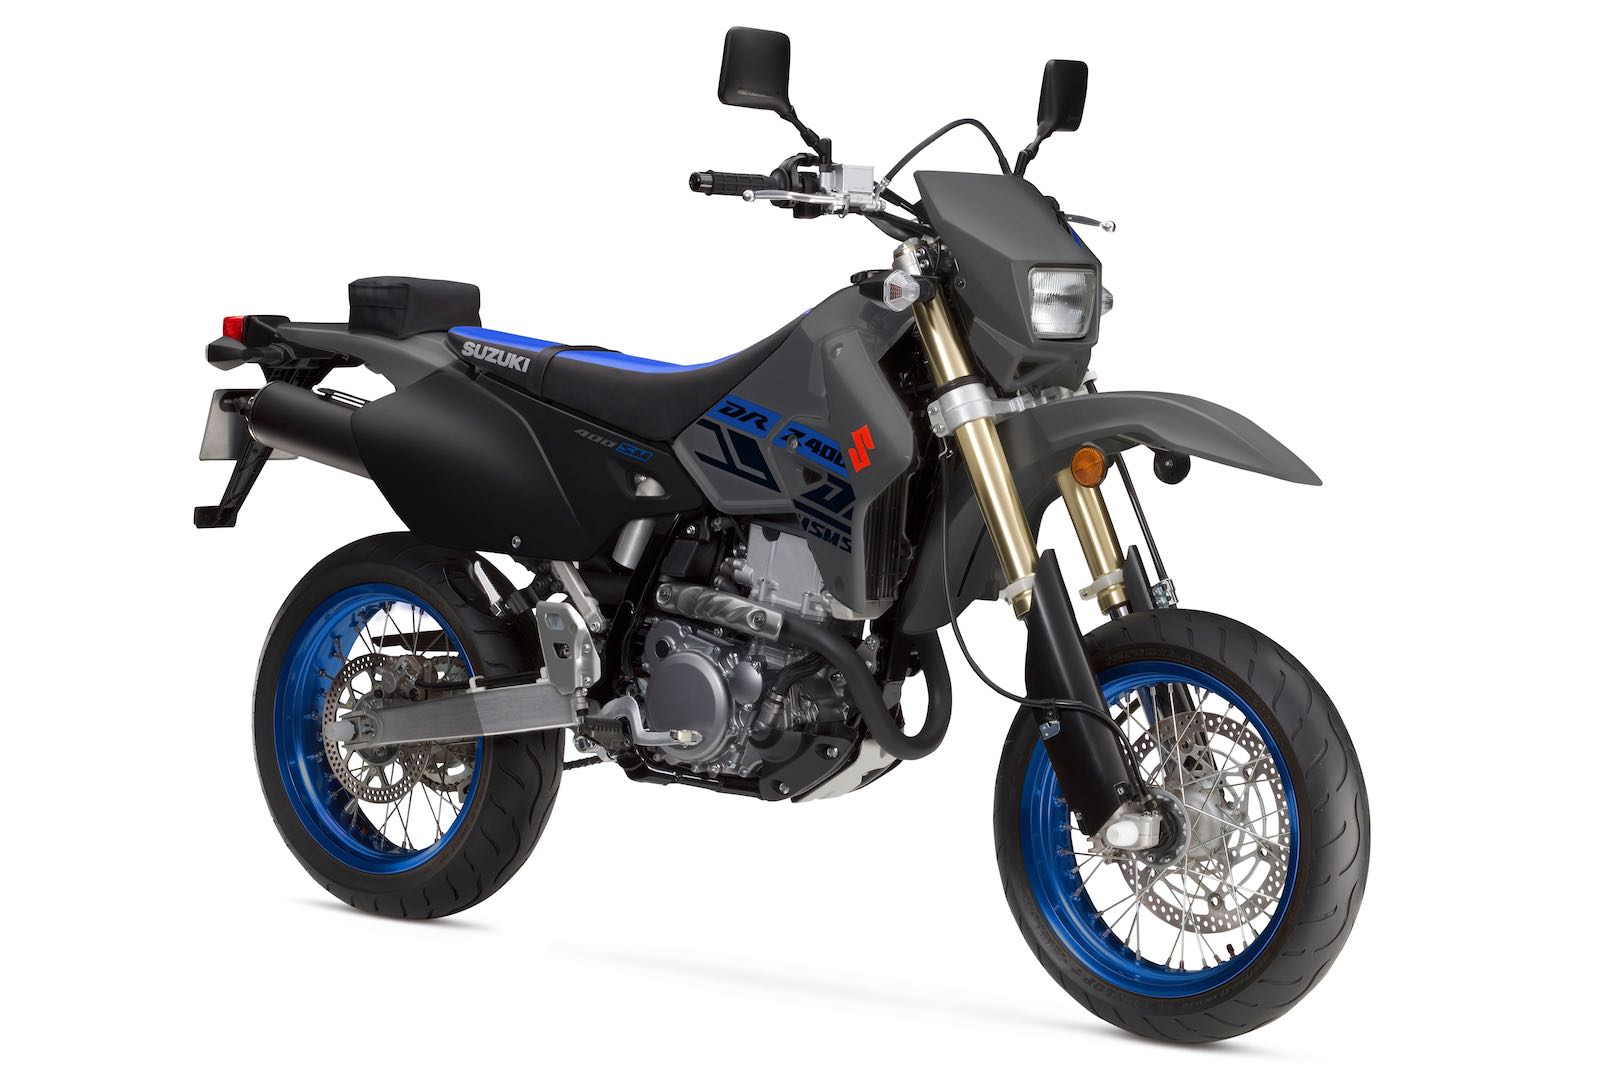 2020 Suzuki DR-Z400SM Buyer's Guide: Specs & Prices